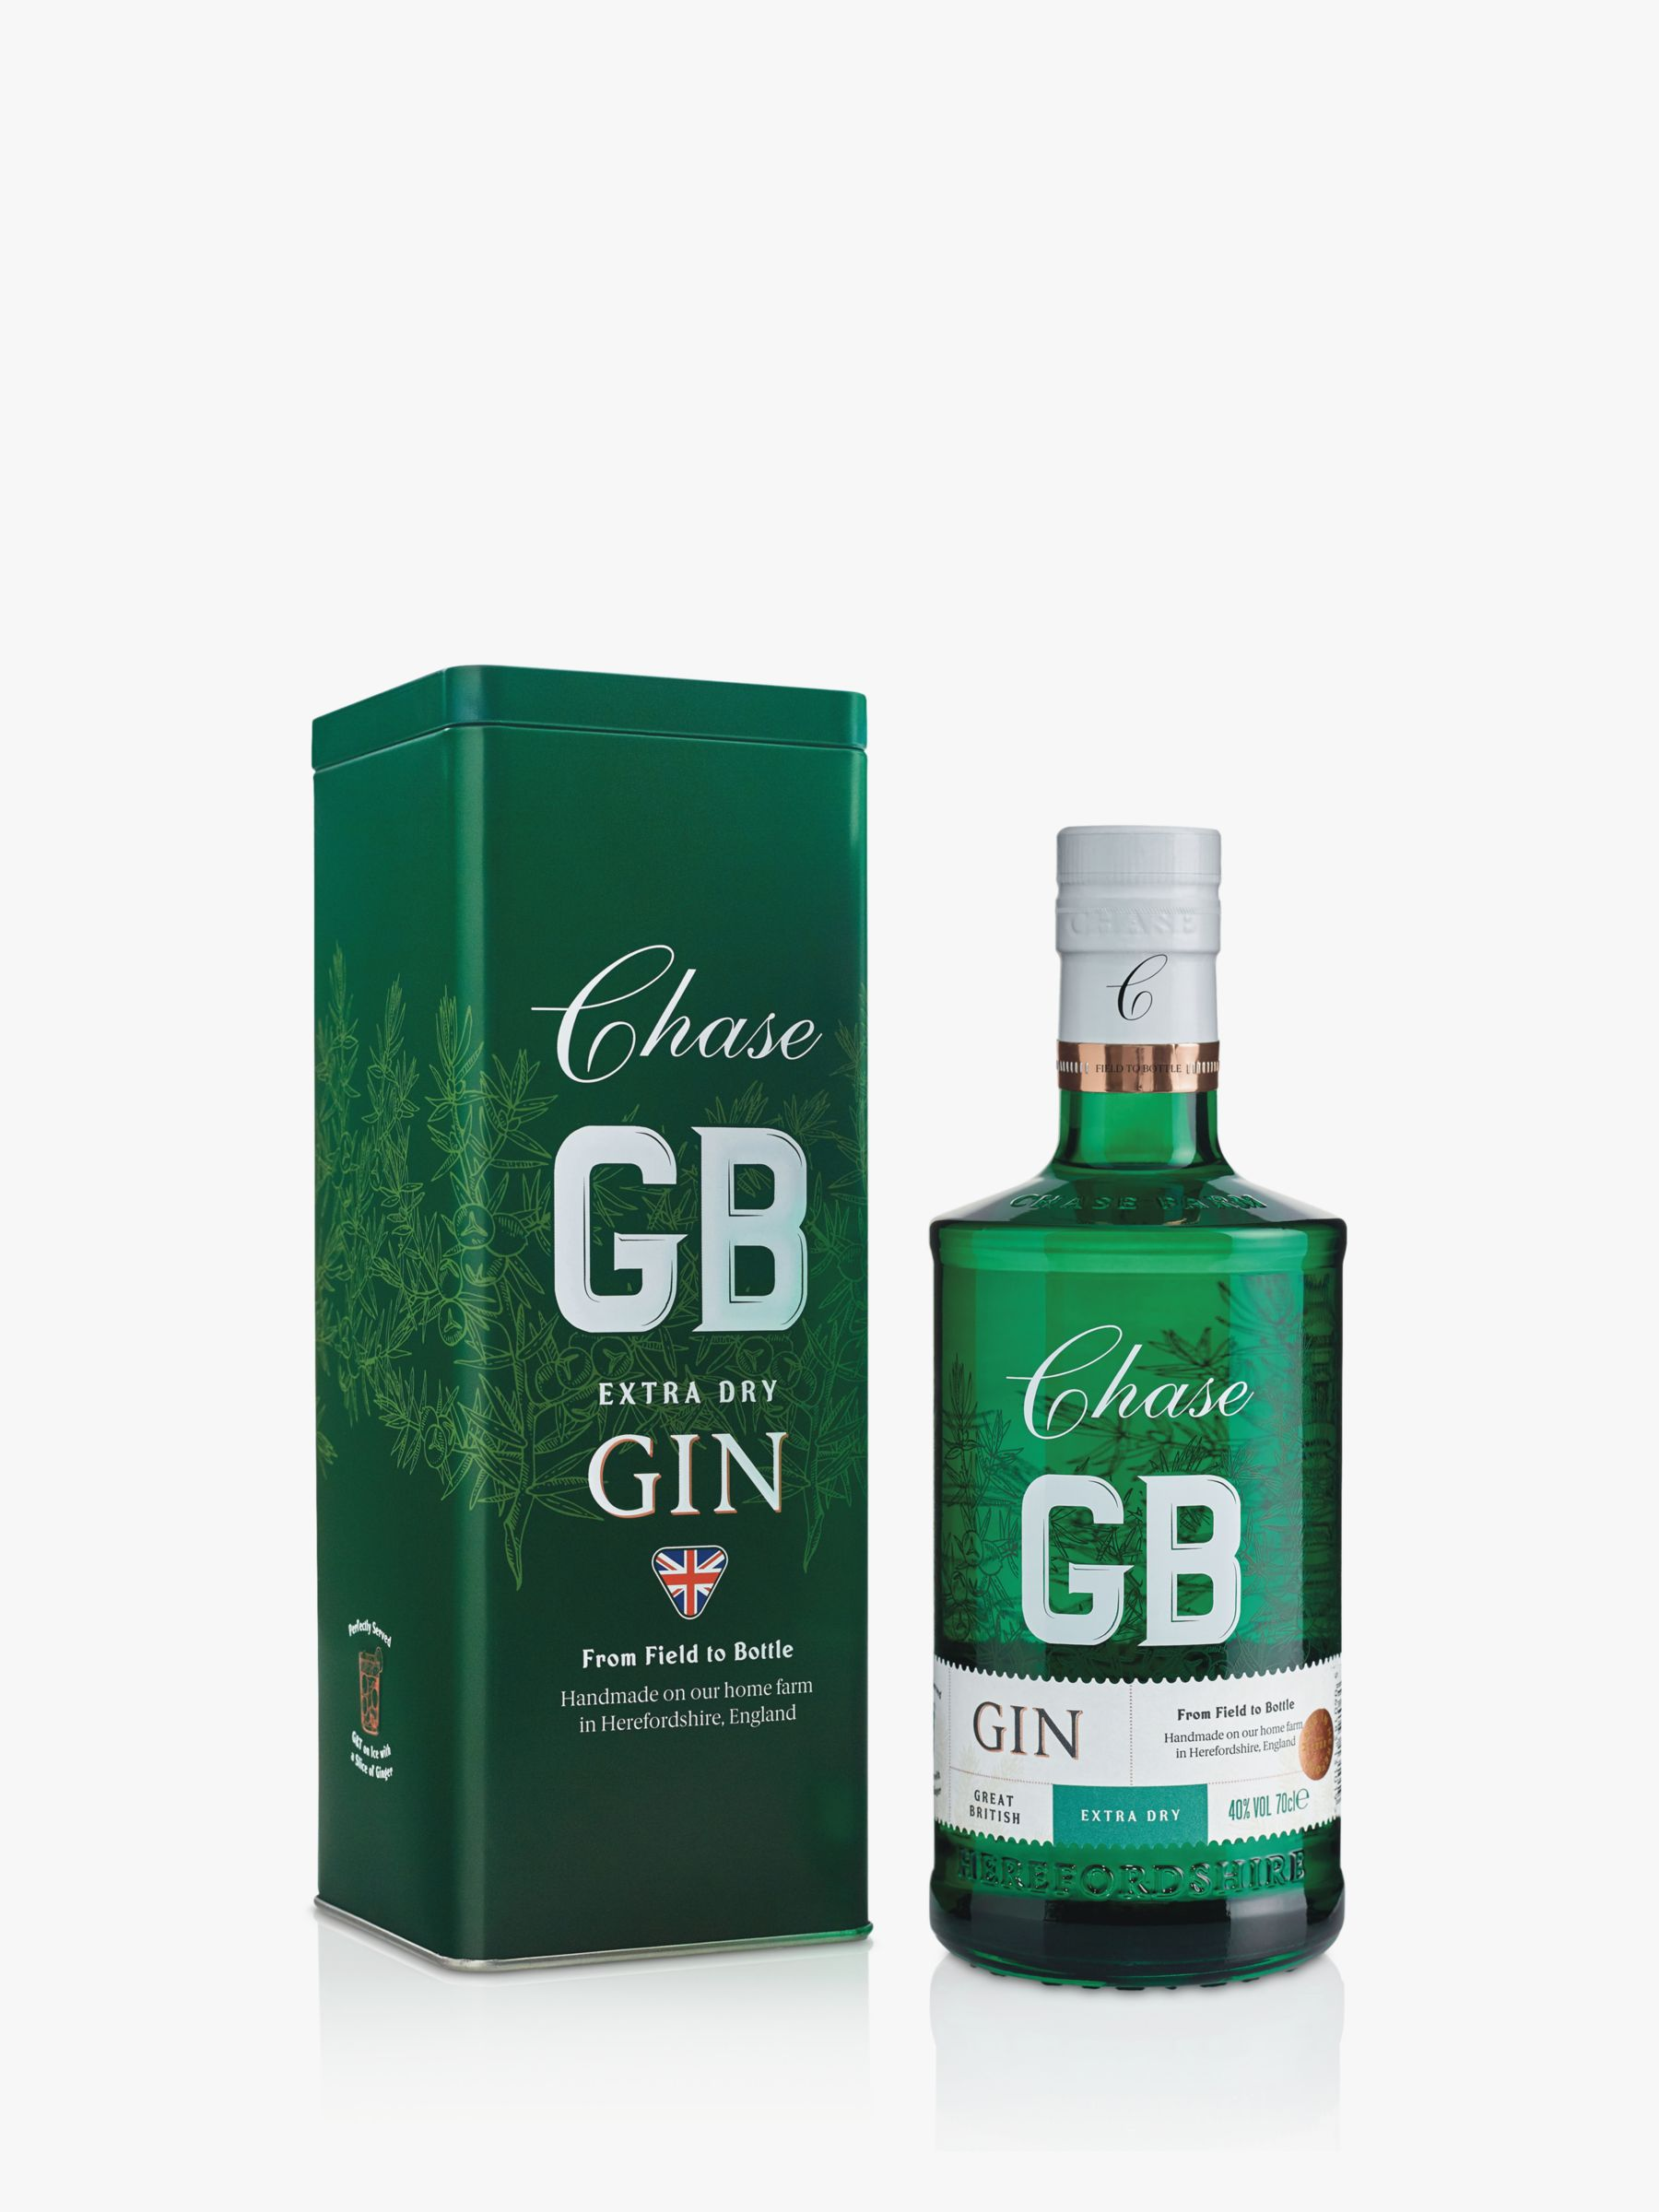 Chase Chase Extra Dry Gin in Racing Green Tin, 70cl